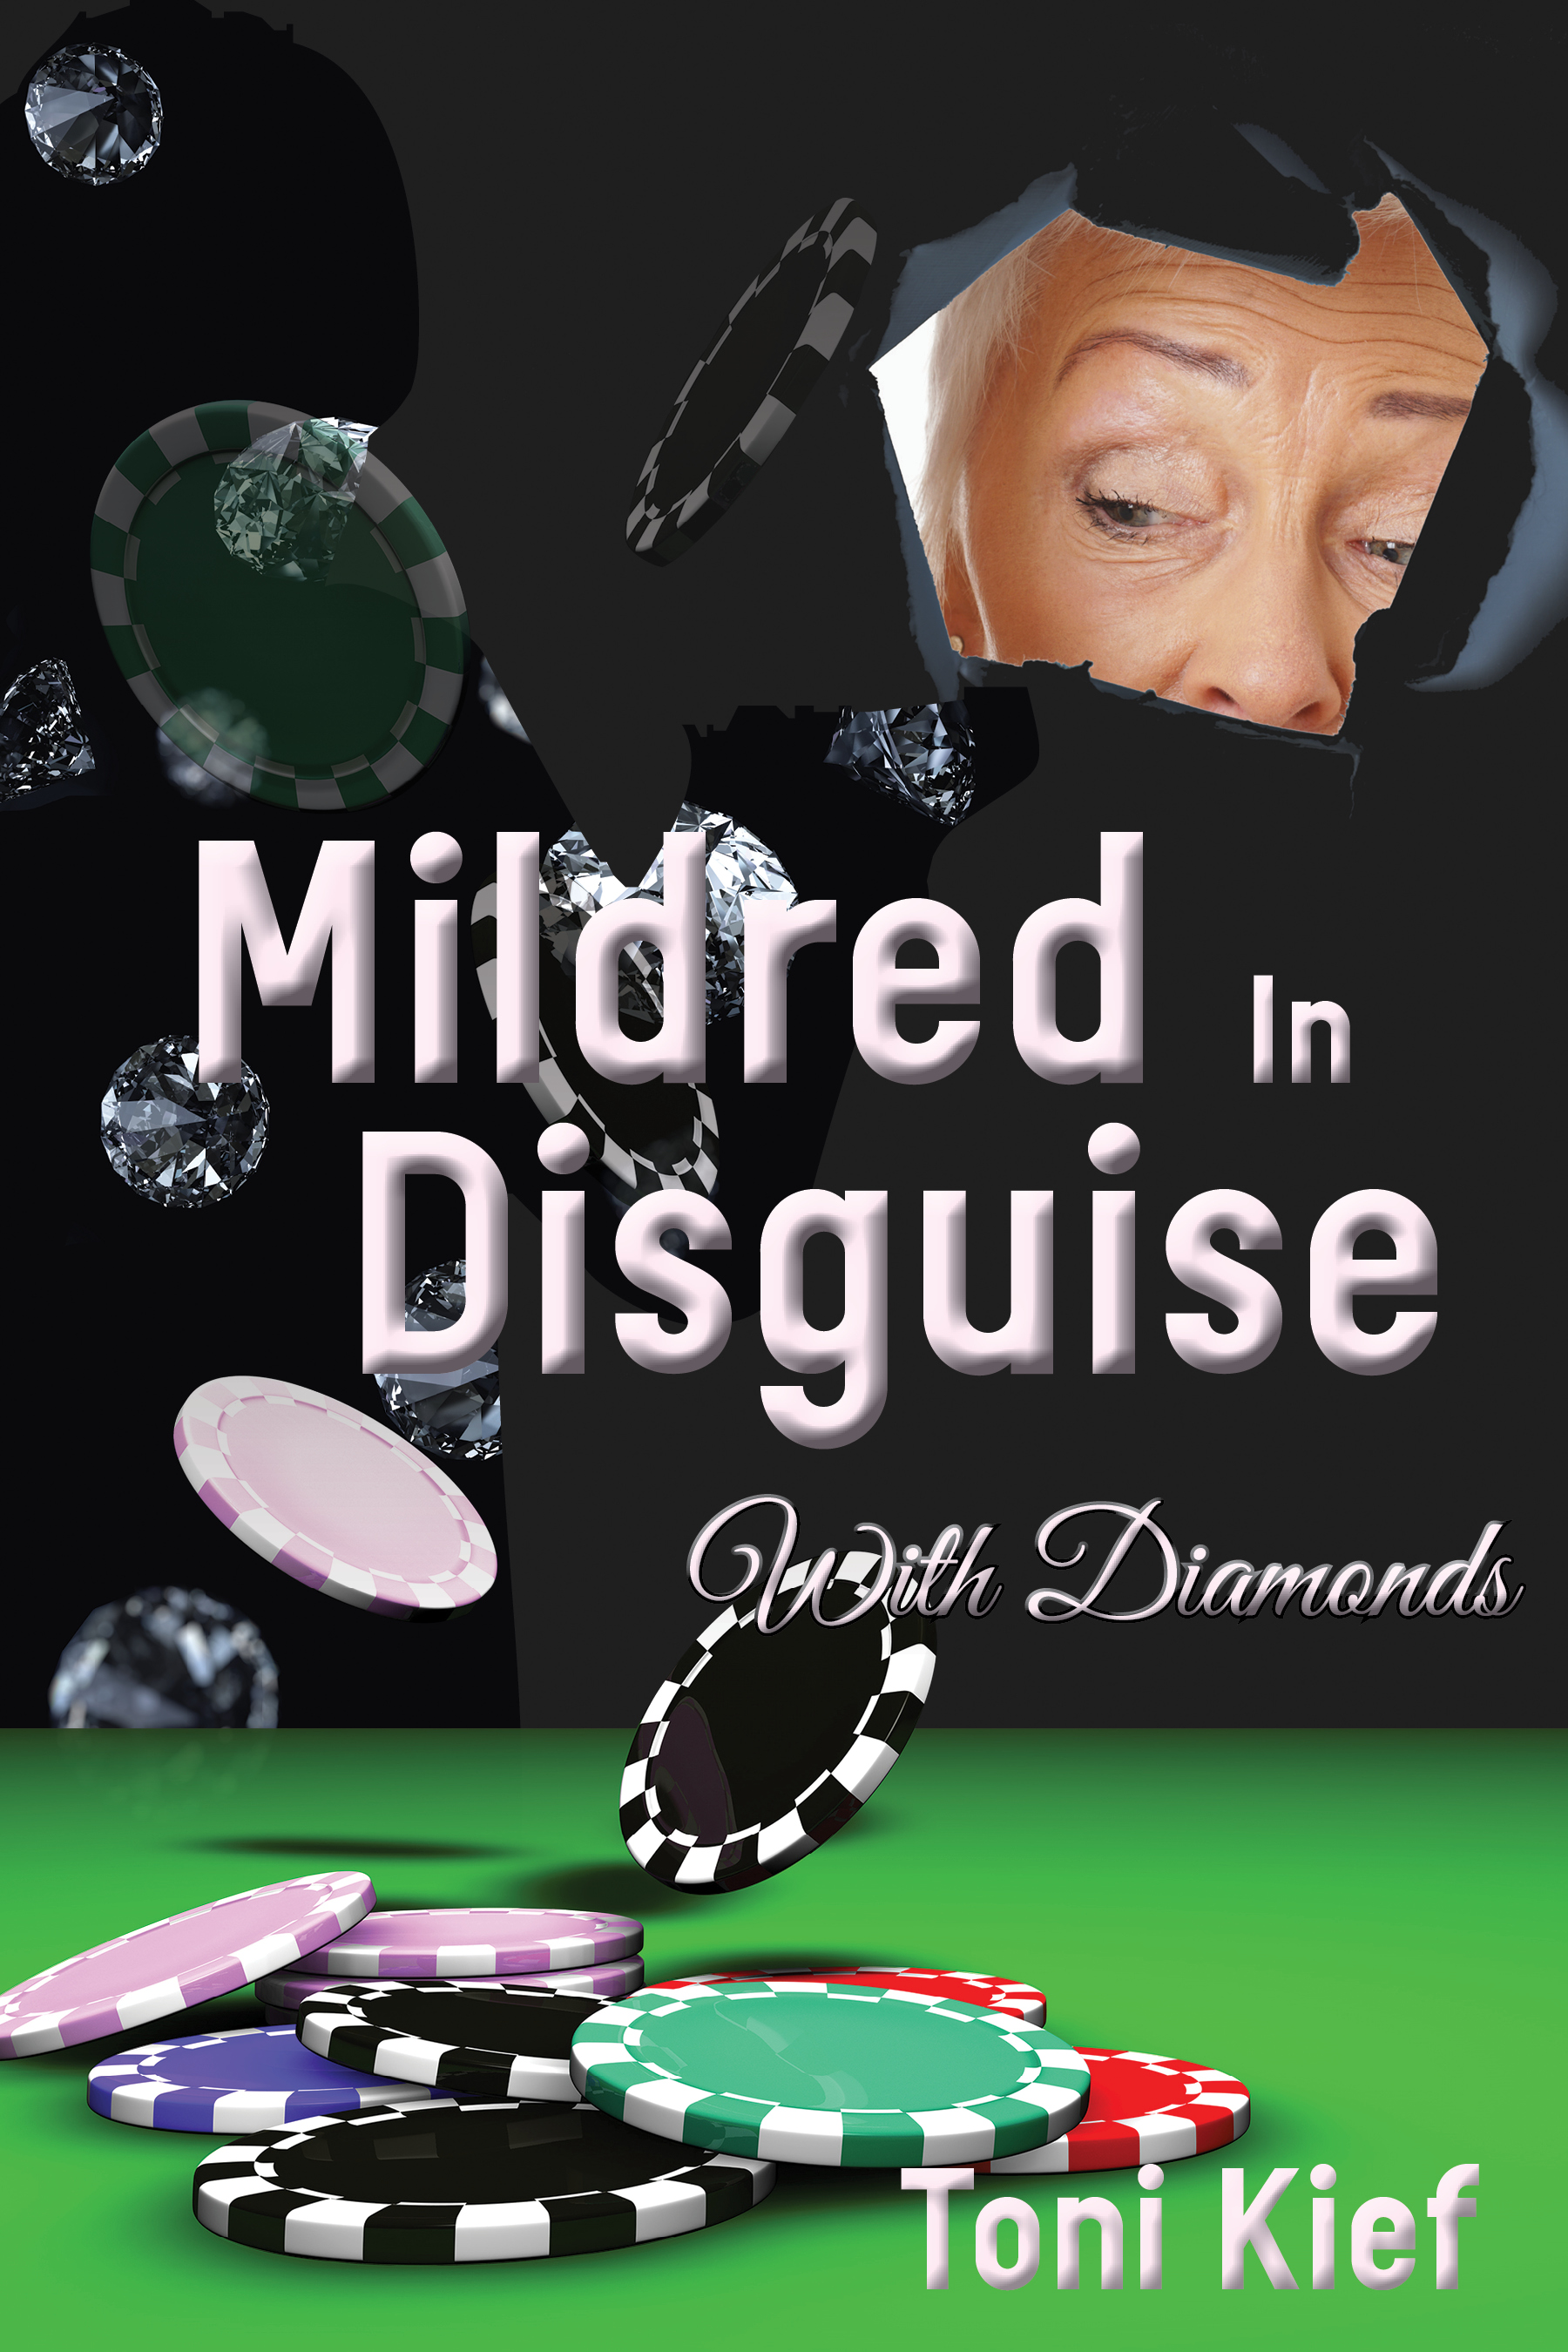 Mildred in Disguise with Diamonds Toni Kief